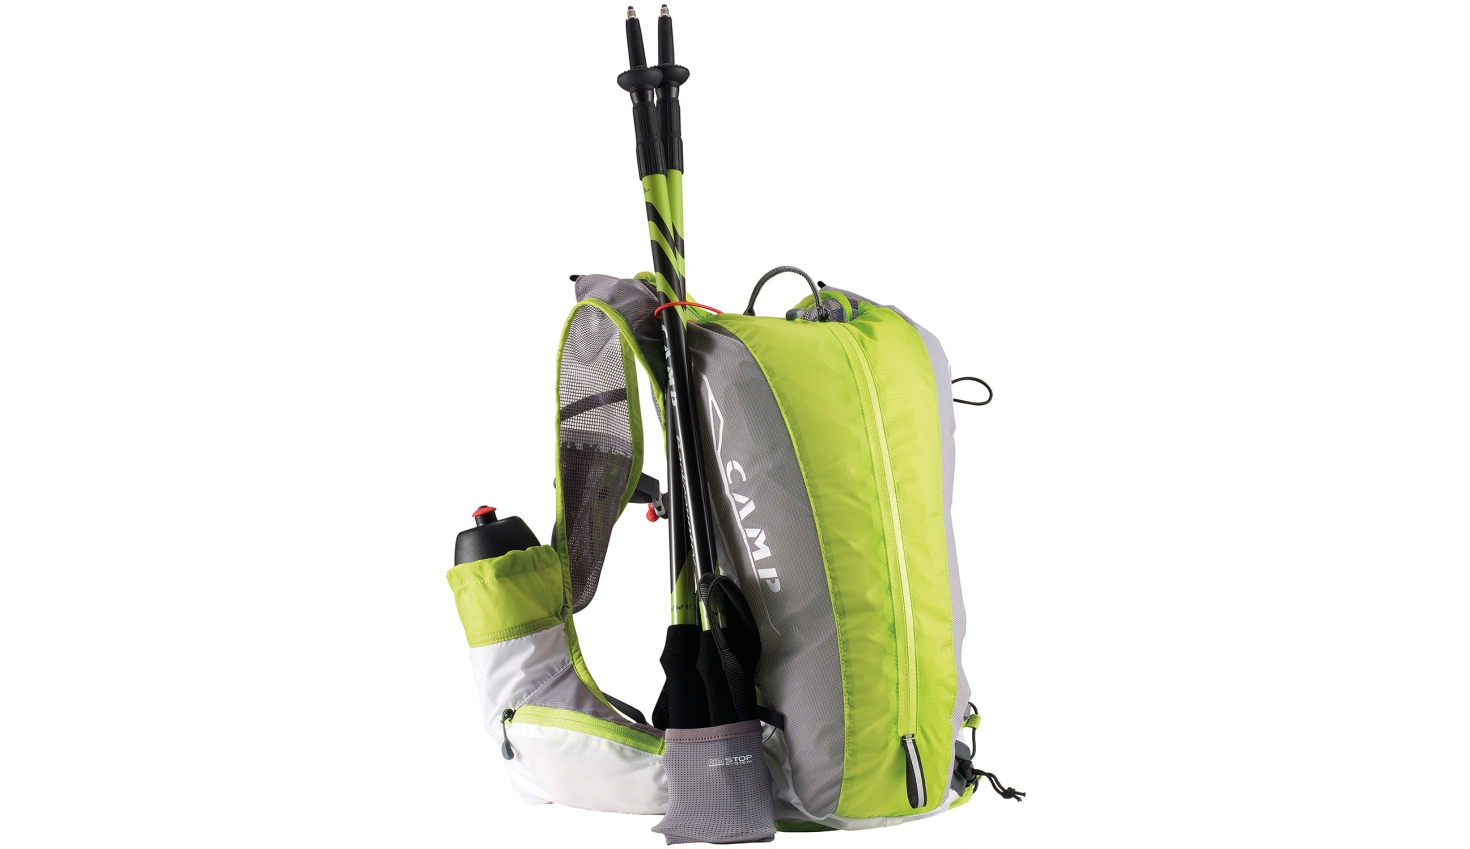 Camp_Trail_Vest_Light_Backpack_10_L_Green_White[14705x849]